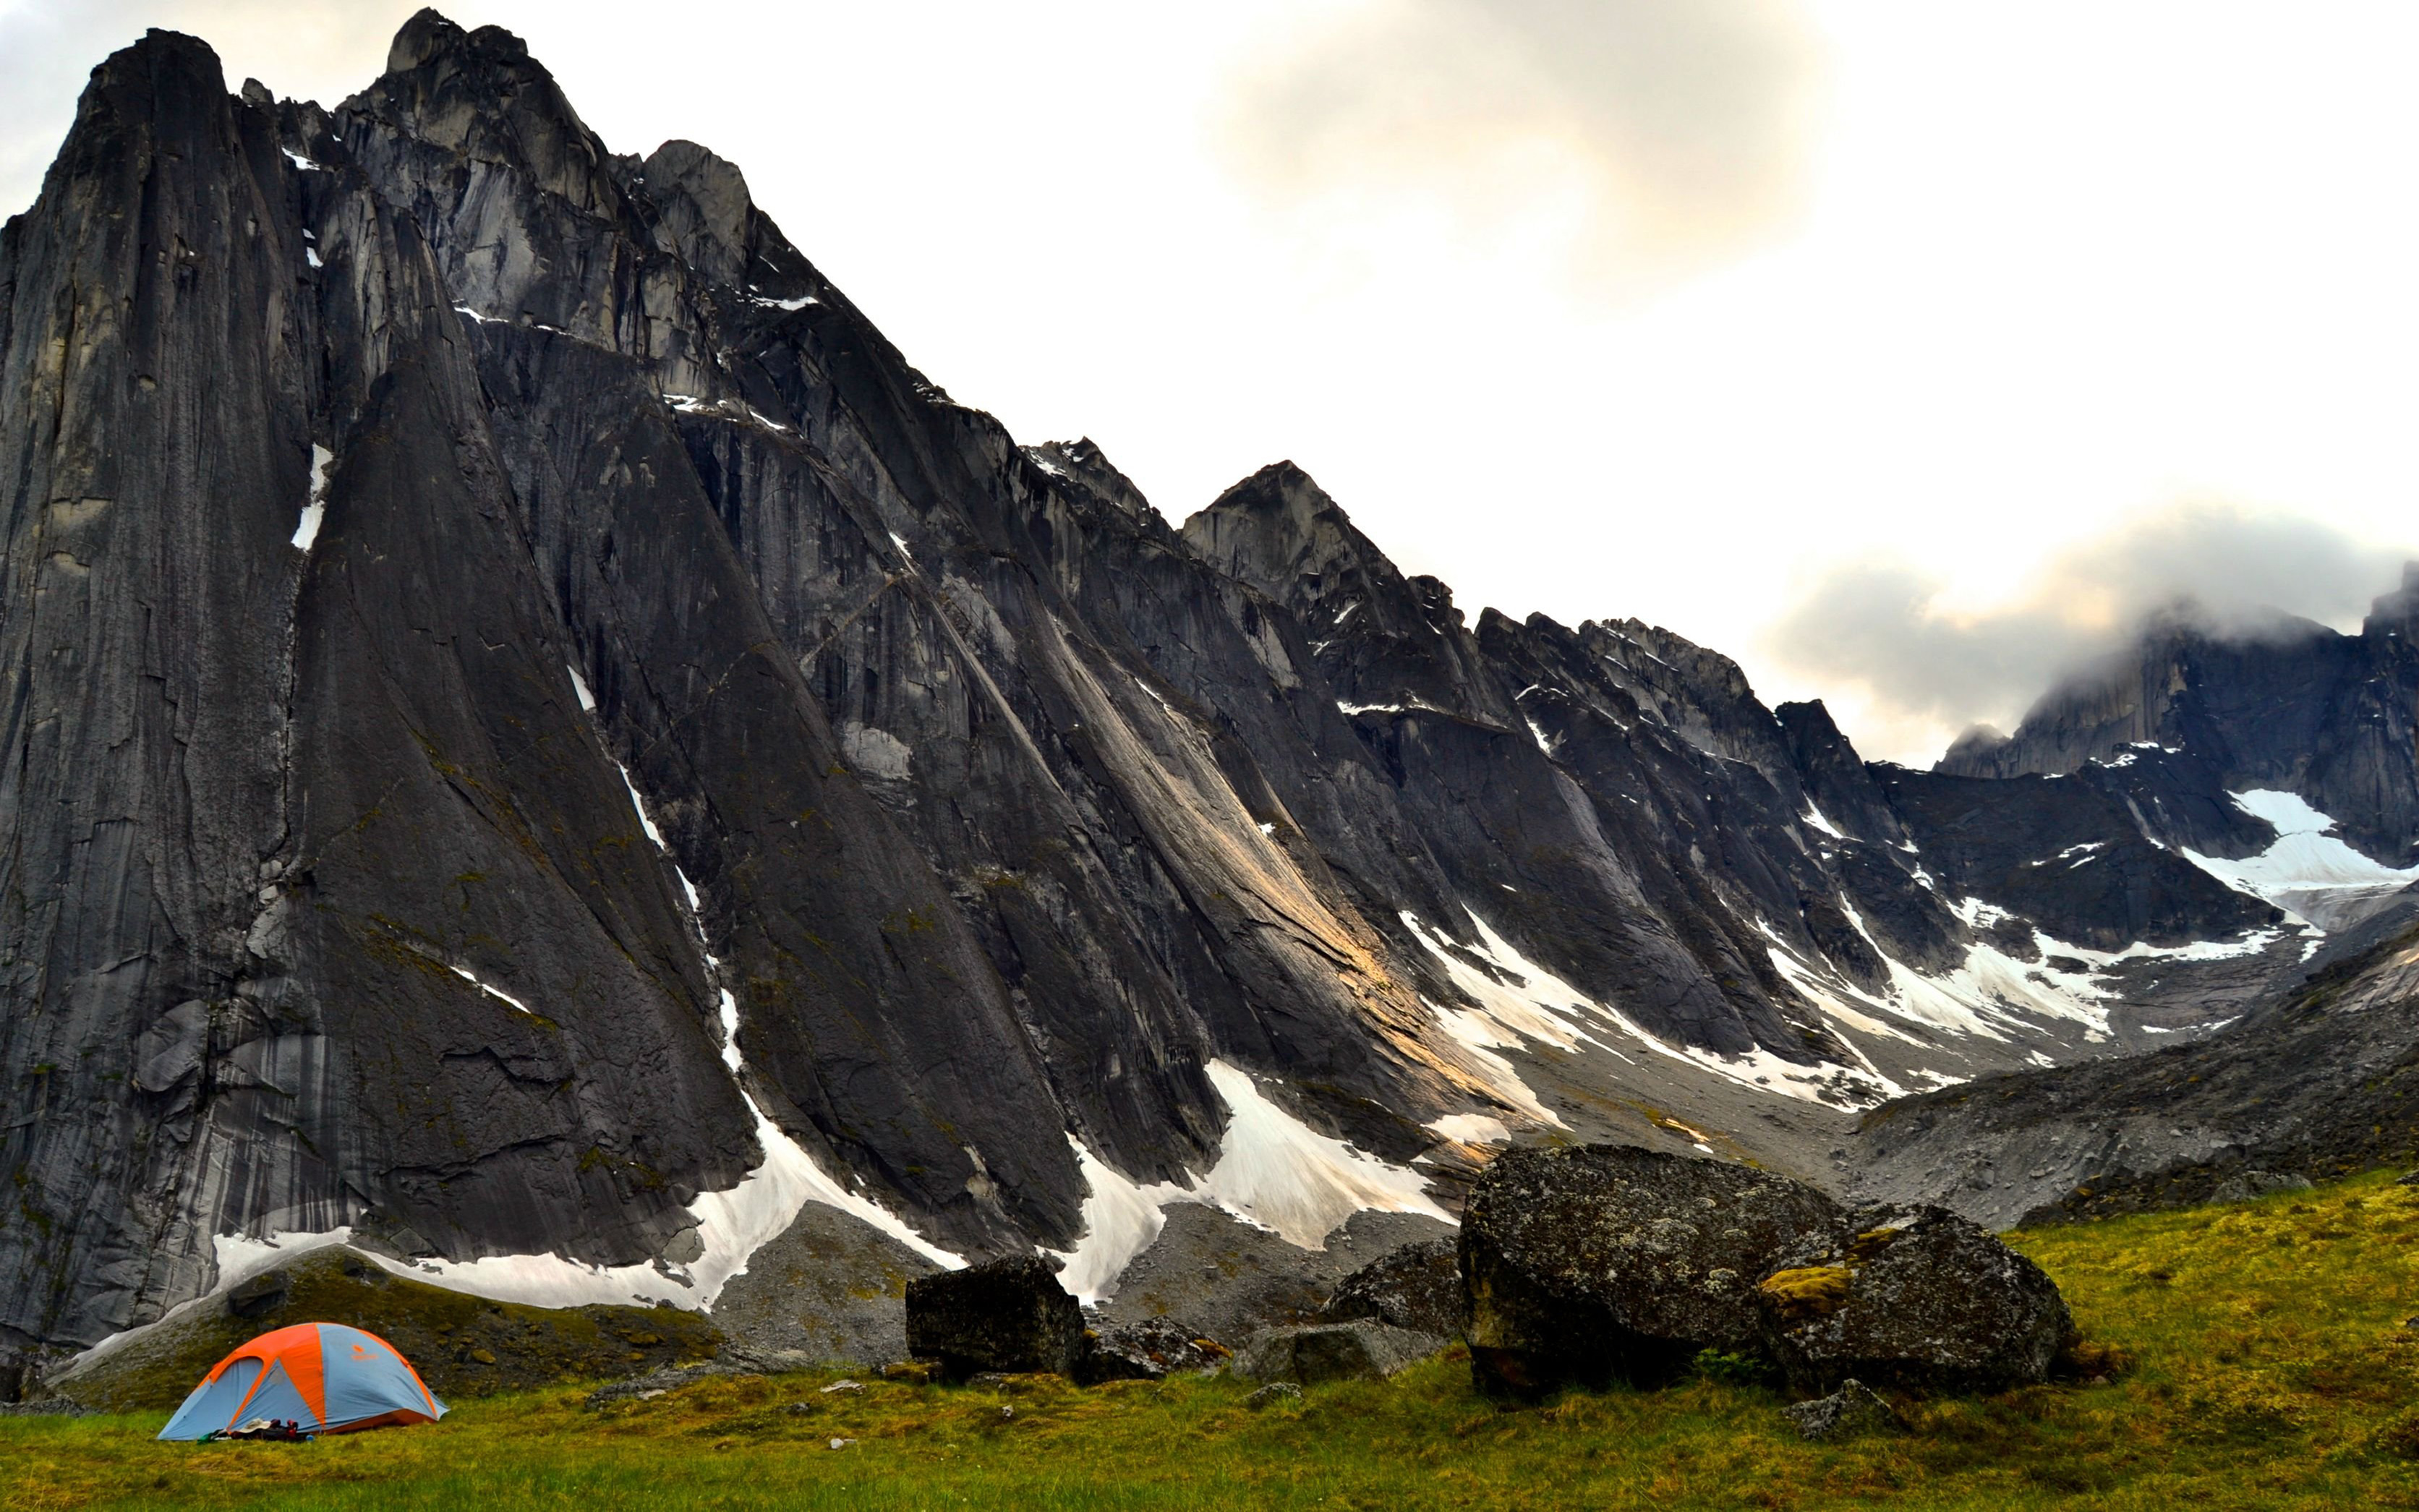 Nahanni-National-Park-Reserve-of-Canada-Mountains-rock-sharp-mountain-peaks-snow-closed-sky-with-clouds